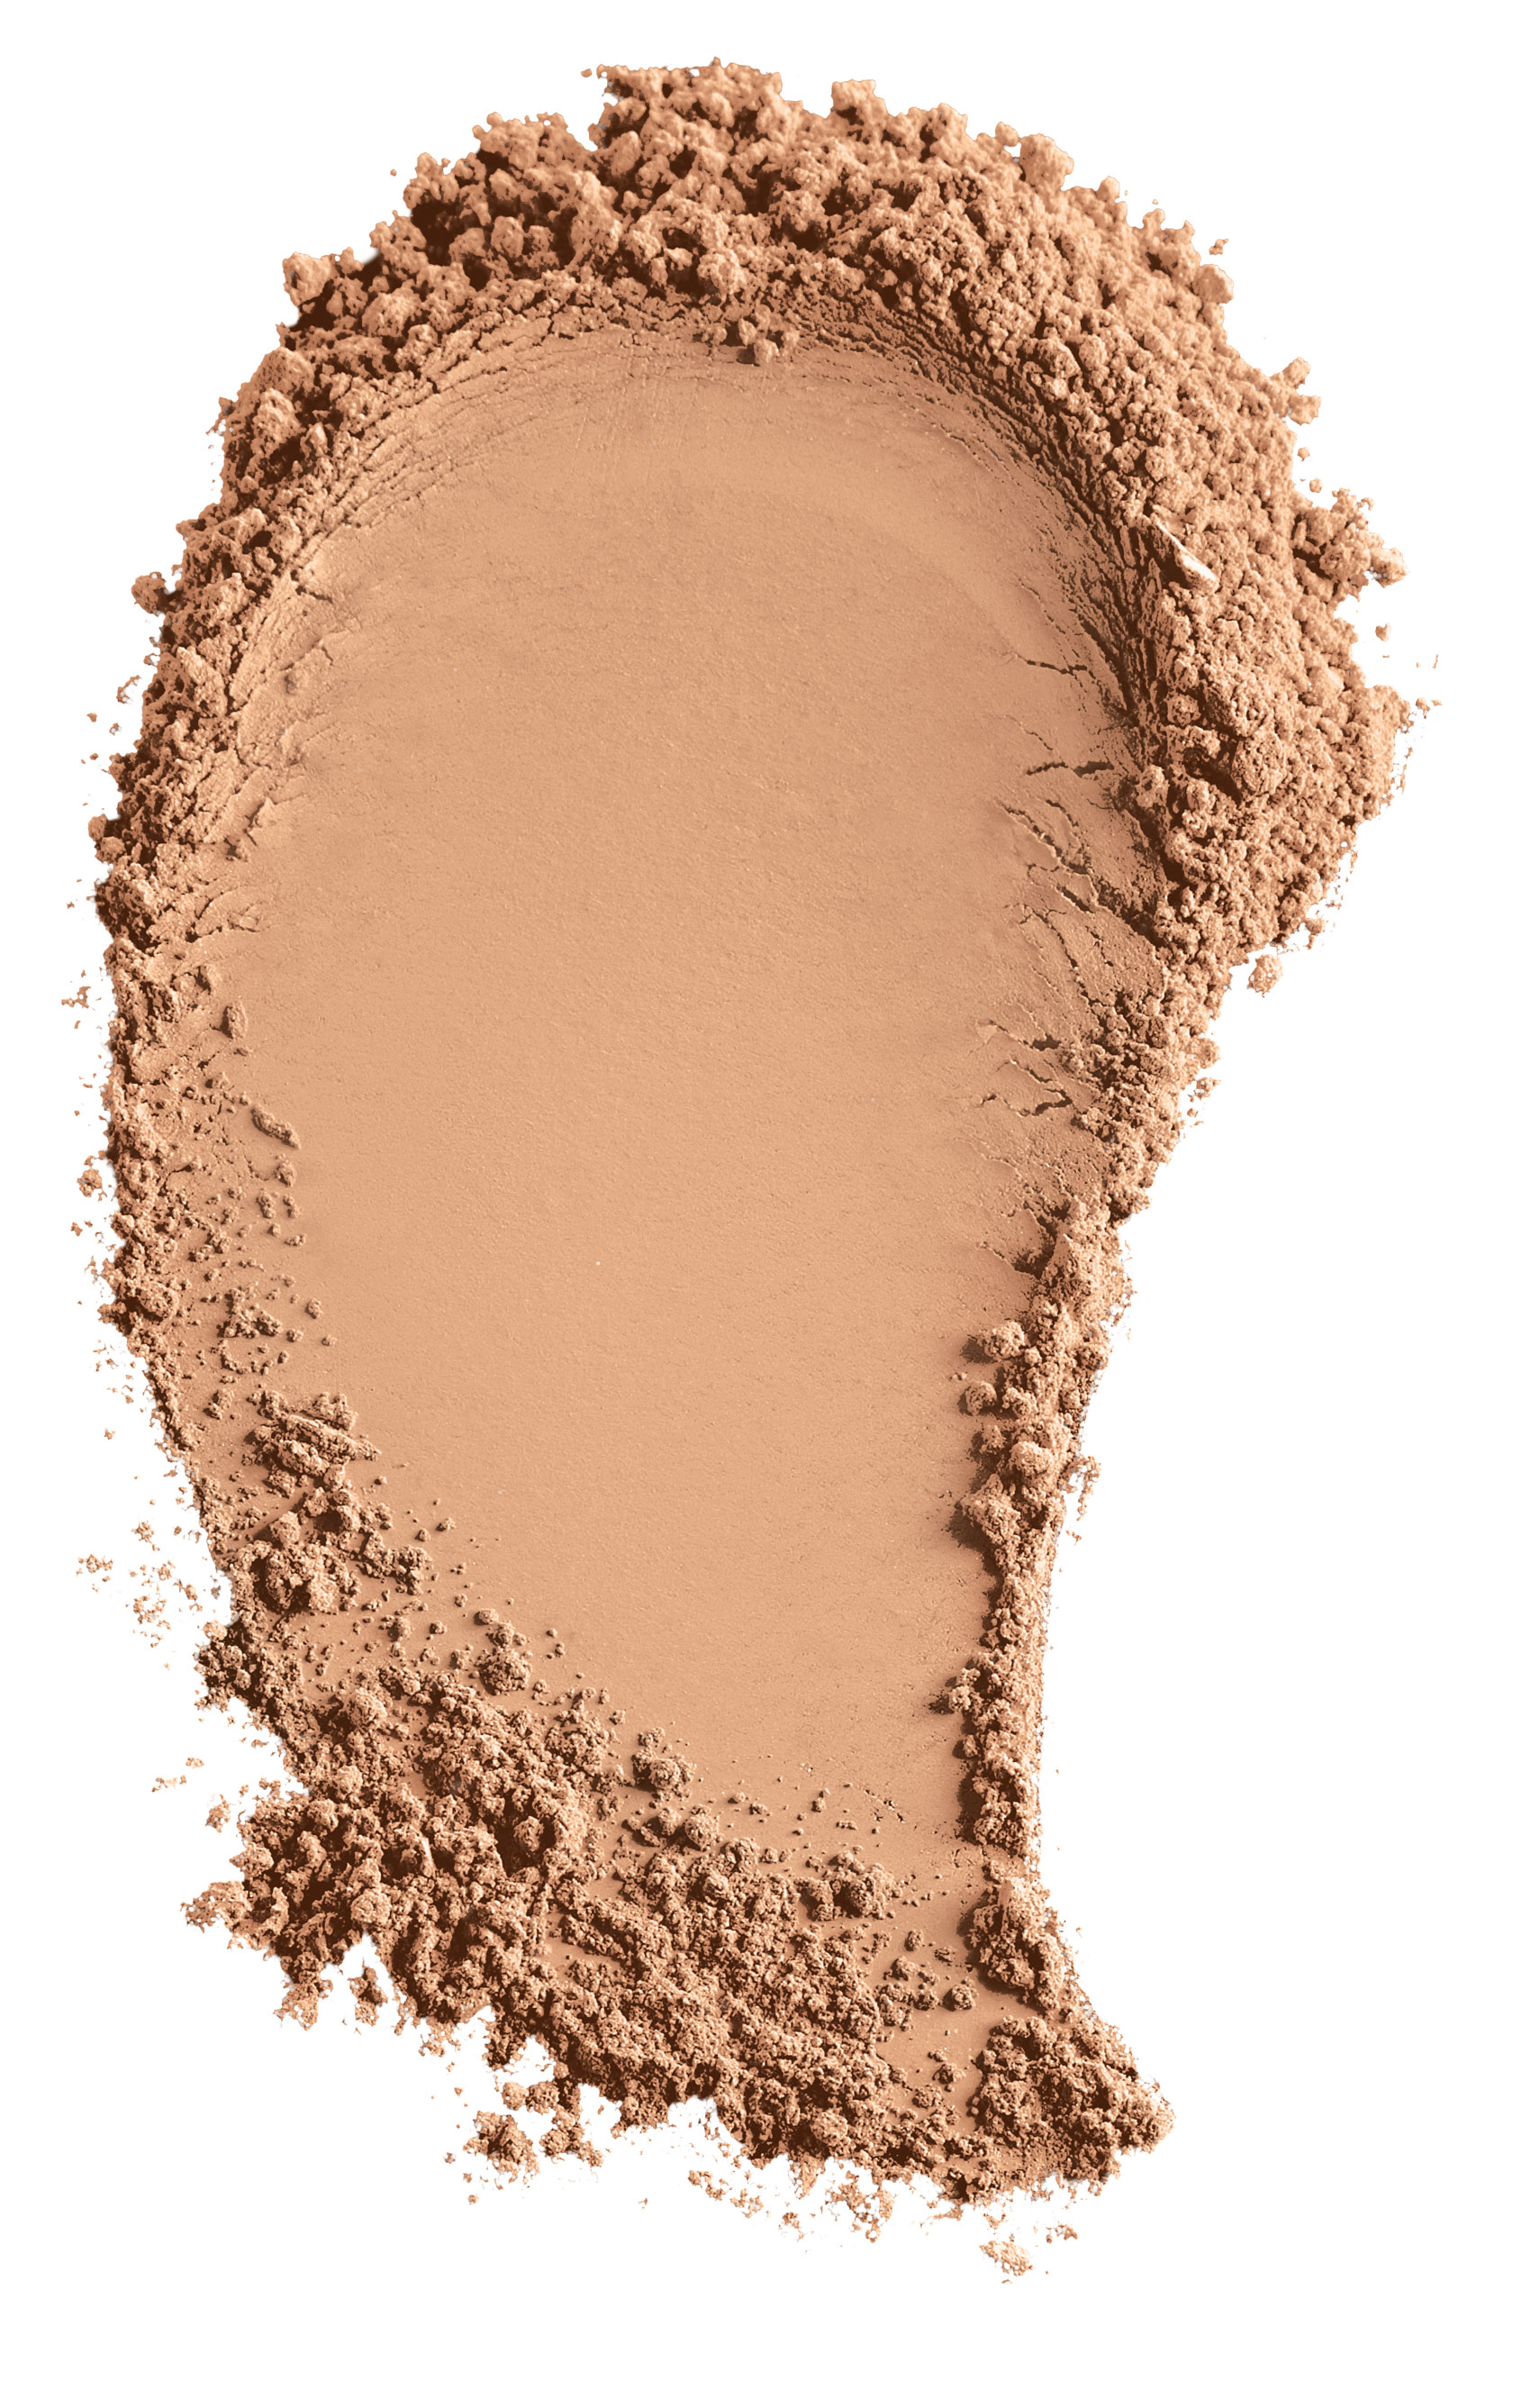 _Foundation_Matte_Golden_Tan_Smear